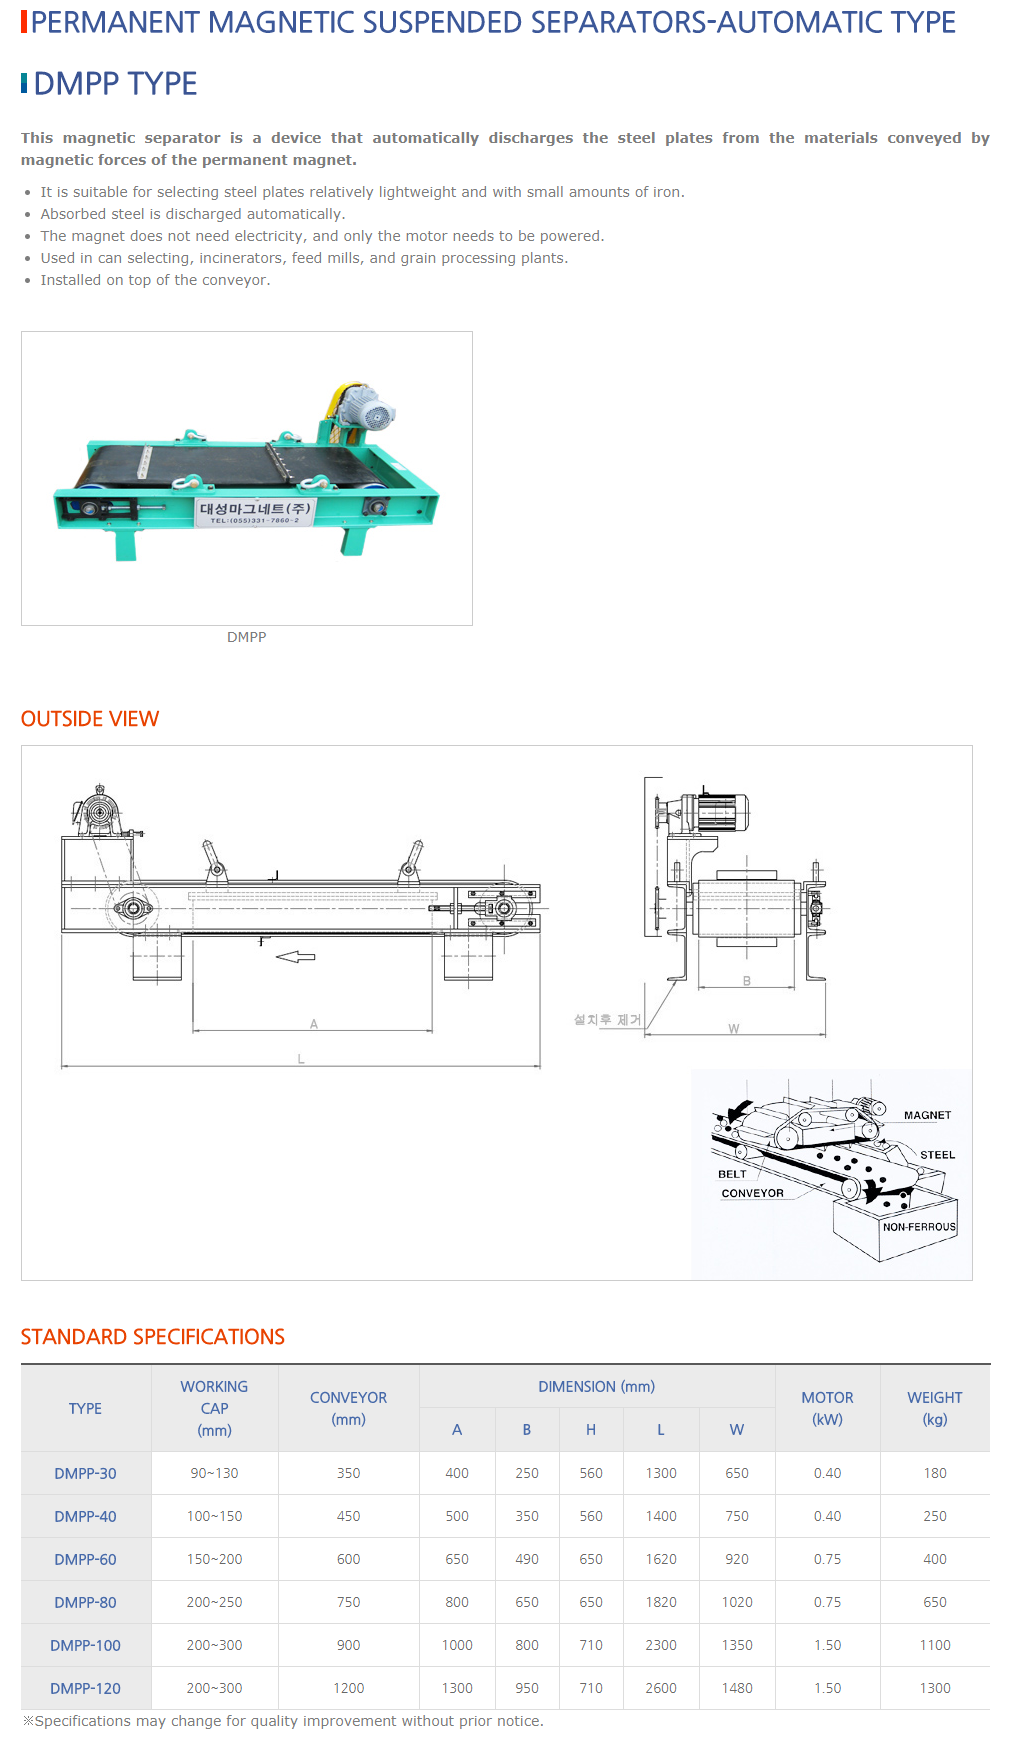 DAESUNG MARGNET Permanent Magnetic Suspended Separators (Automatic Type) DMPP Type